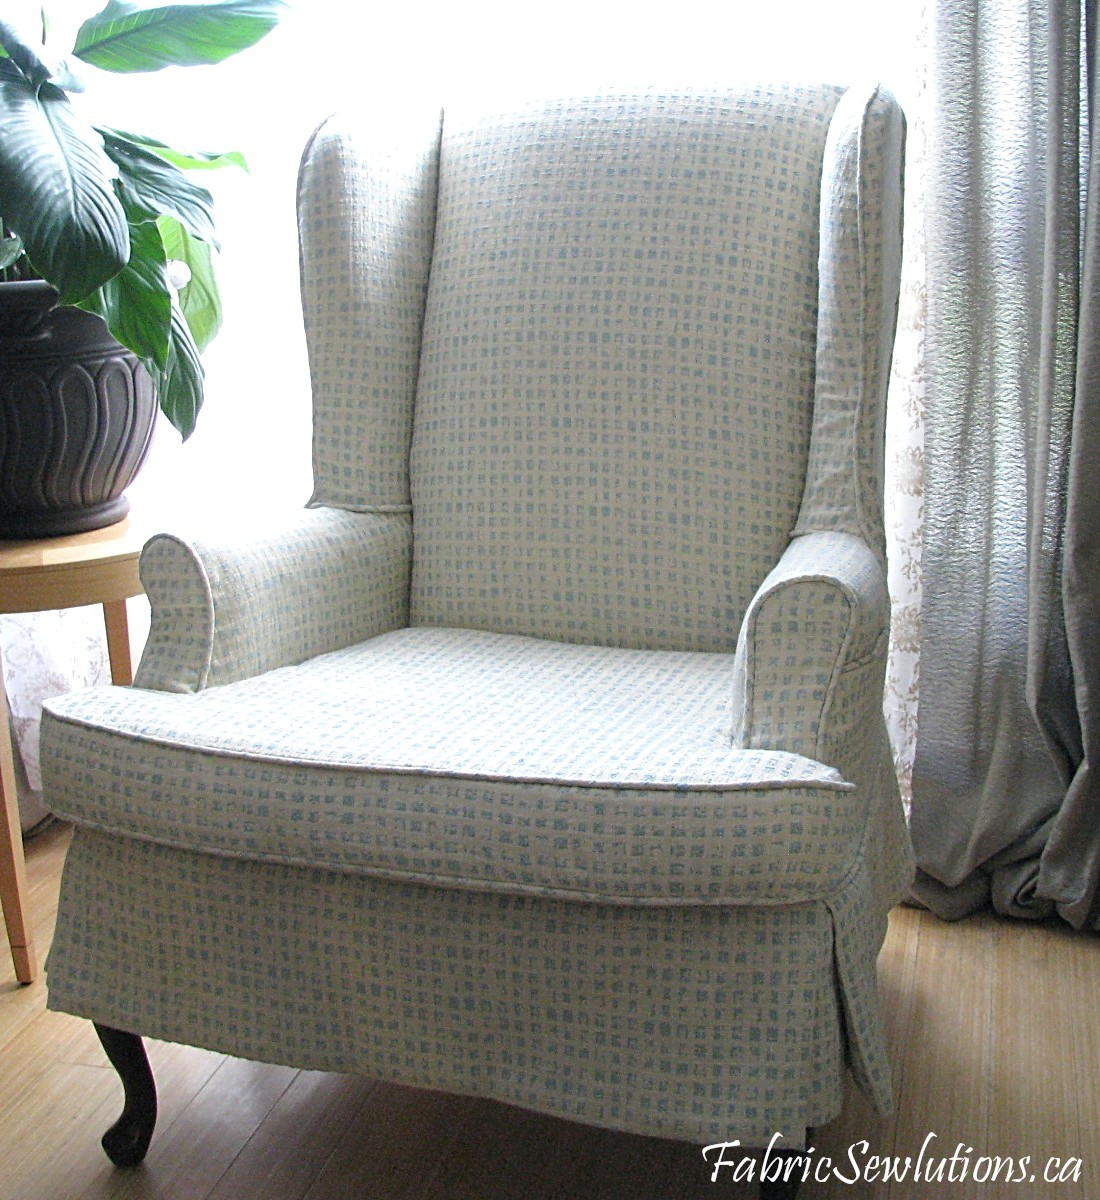 Wingback Chair Slipcover Pattern Wayfair Outdoor Rocking Cushions Sewlutions 39 World